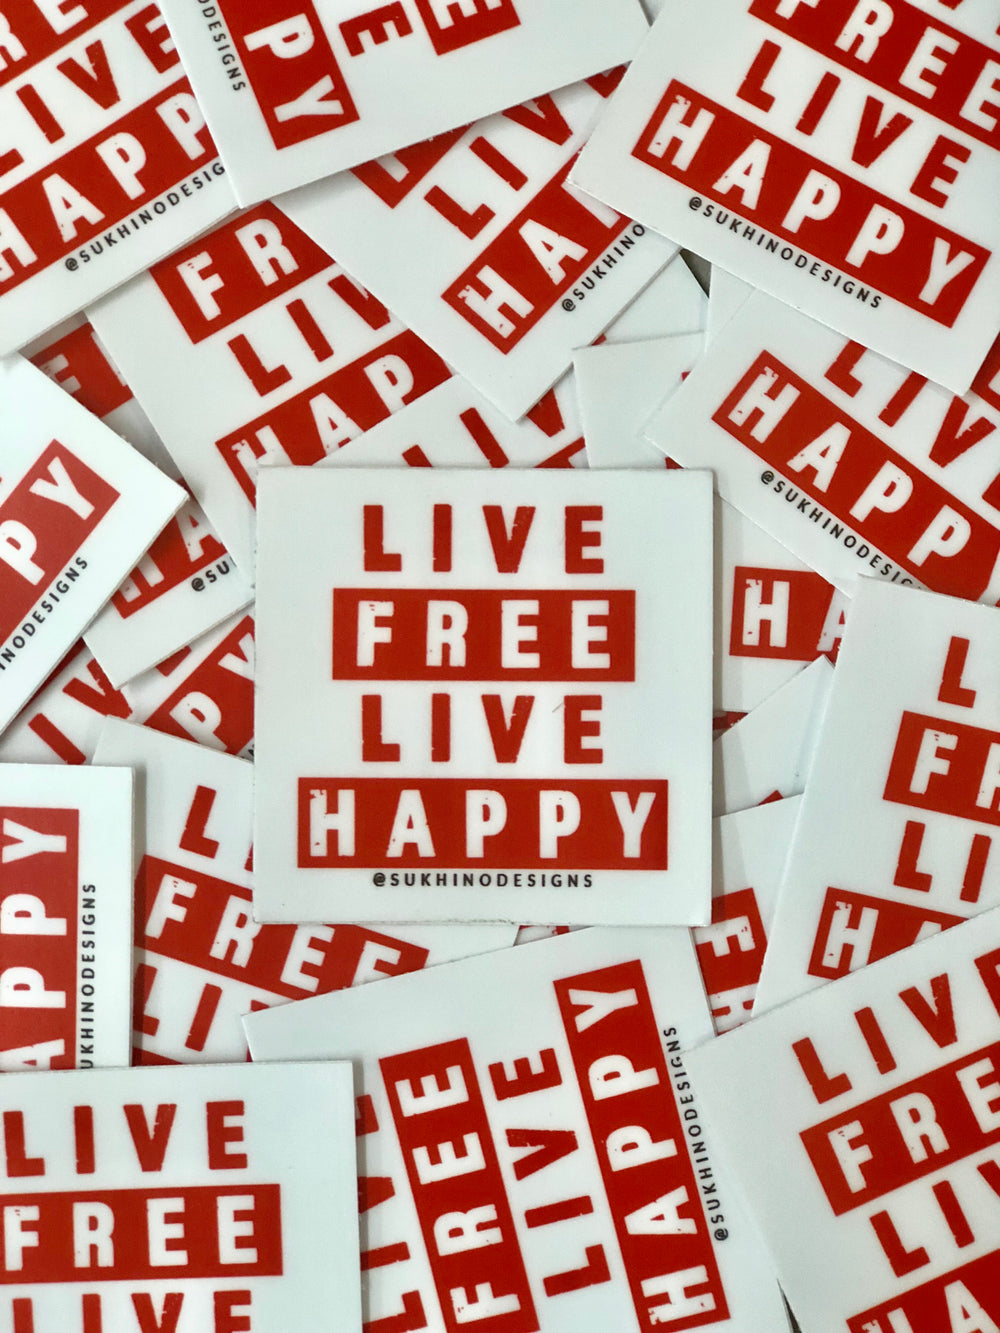 Live Free Live Happy Sticker